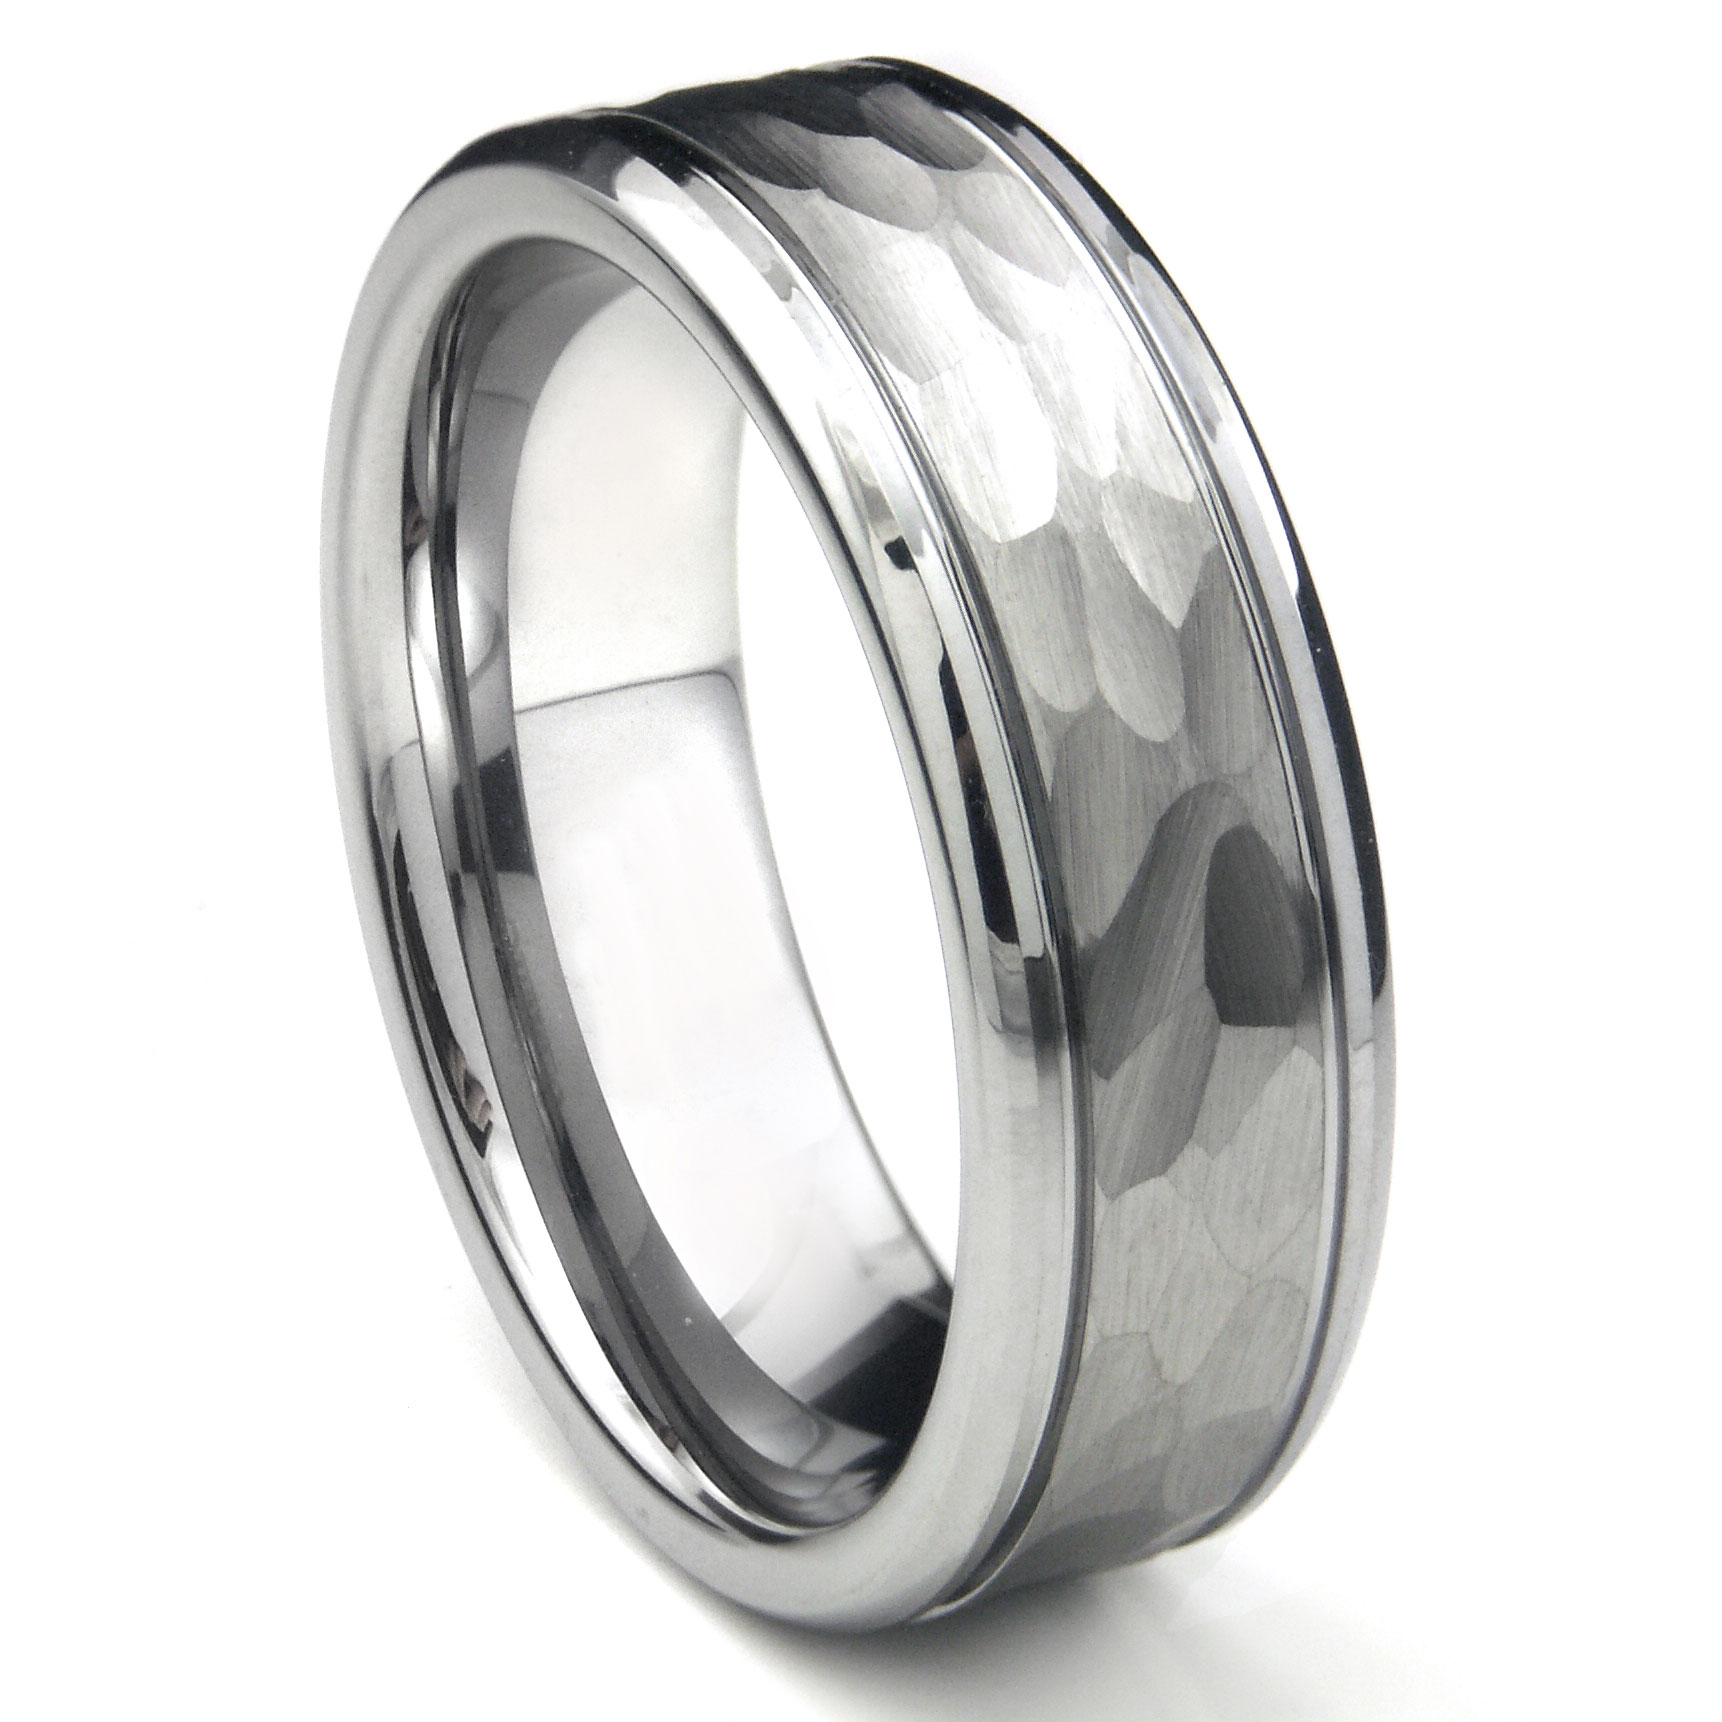 tungsten carbide hammer finish wedding band ring w grooves. Black Bedroom Furniture Sets. Home Design Ideas